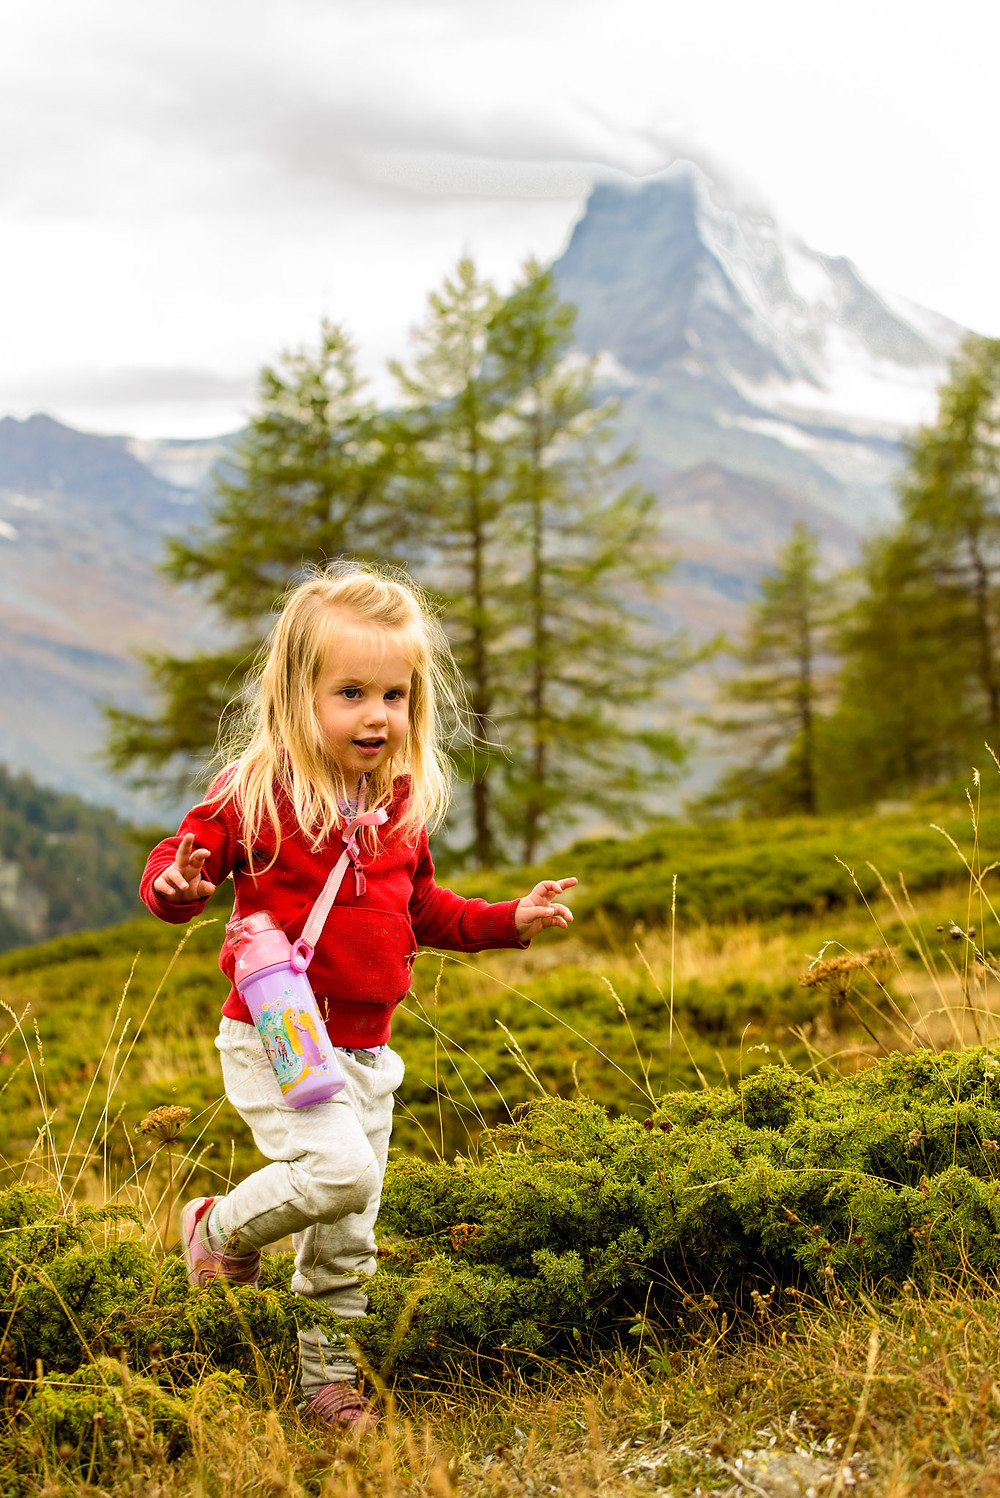 Skye walking in the mountains